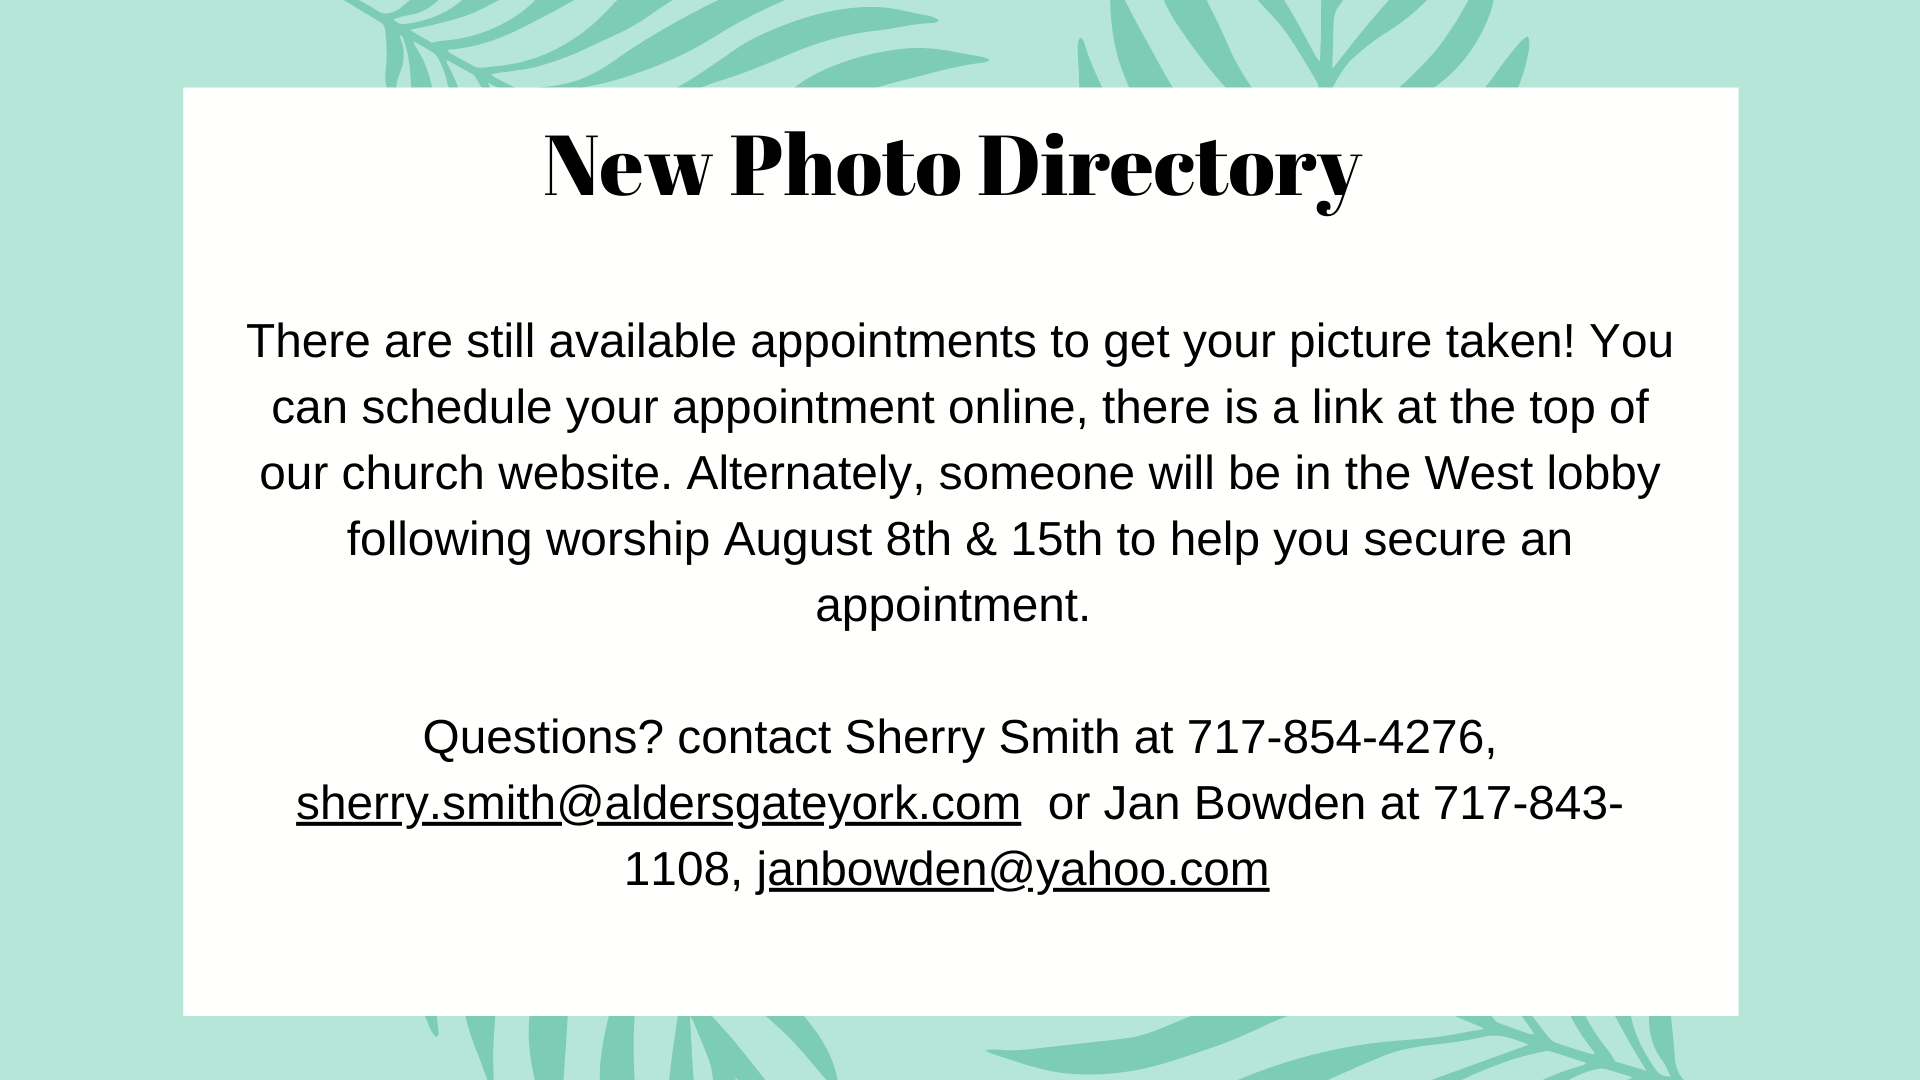 There are still appointments available to get your picture taken!